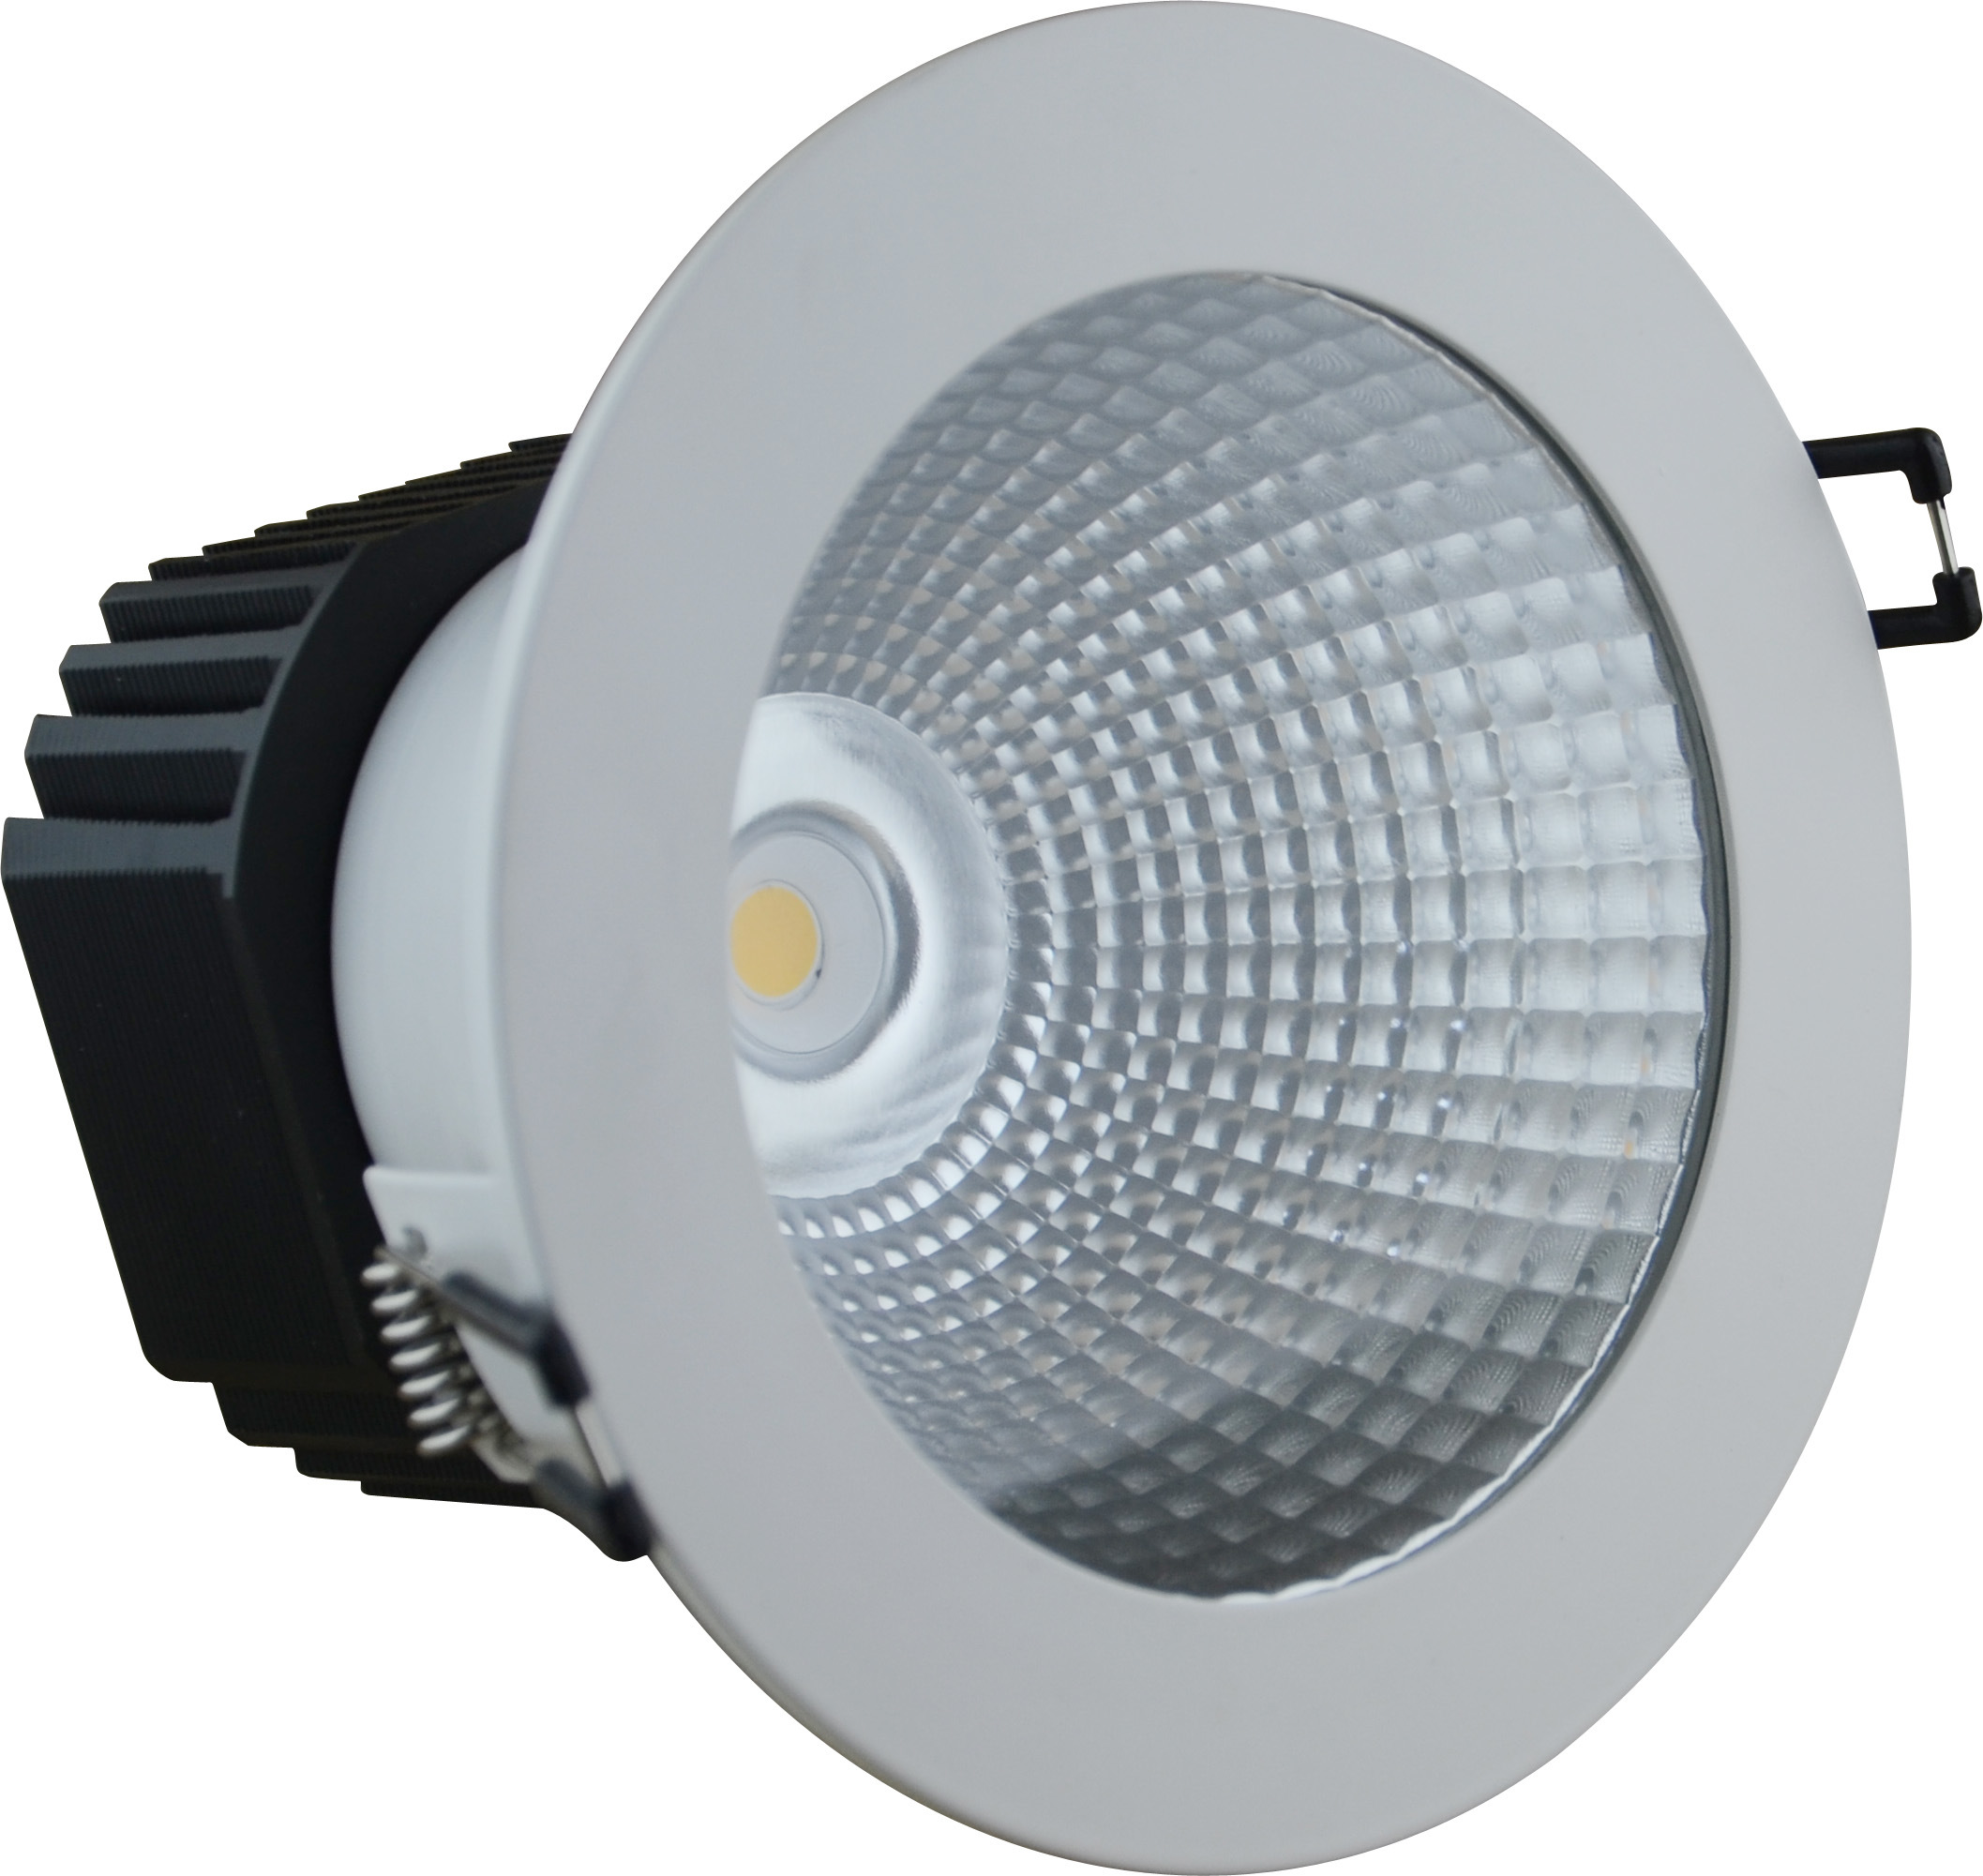 25W LED Downlight for for Interior/Commercial Lighting (LWZ350)